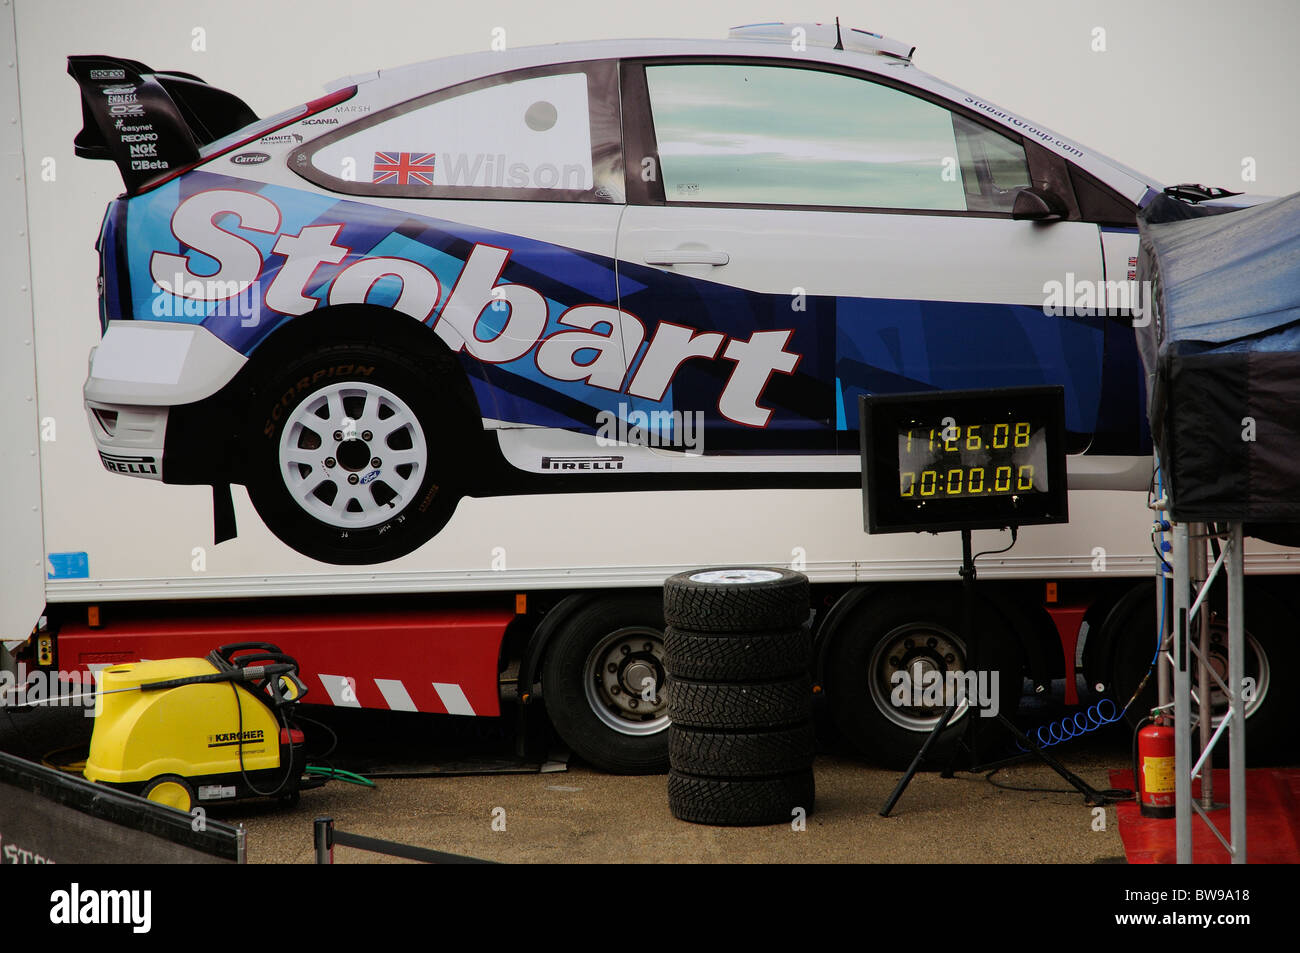 Stobart motor sport truck rally team transport Immagini Stock